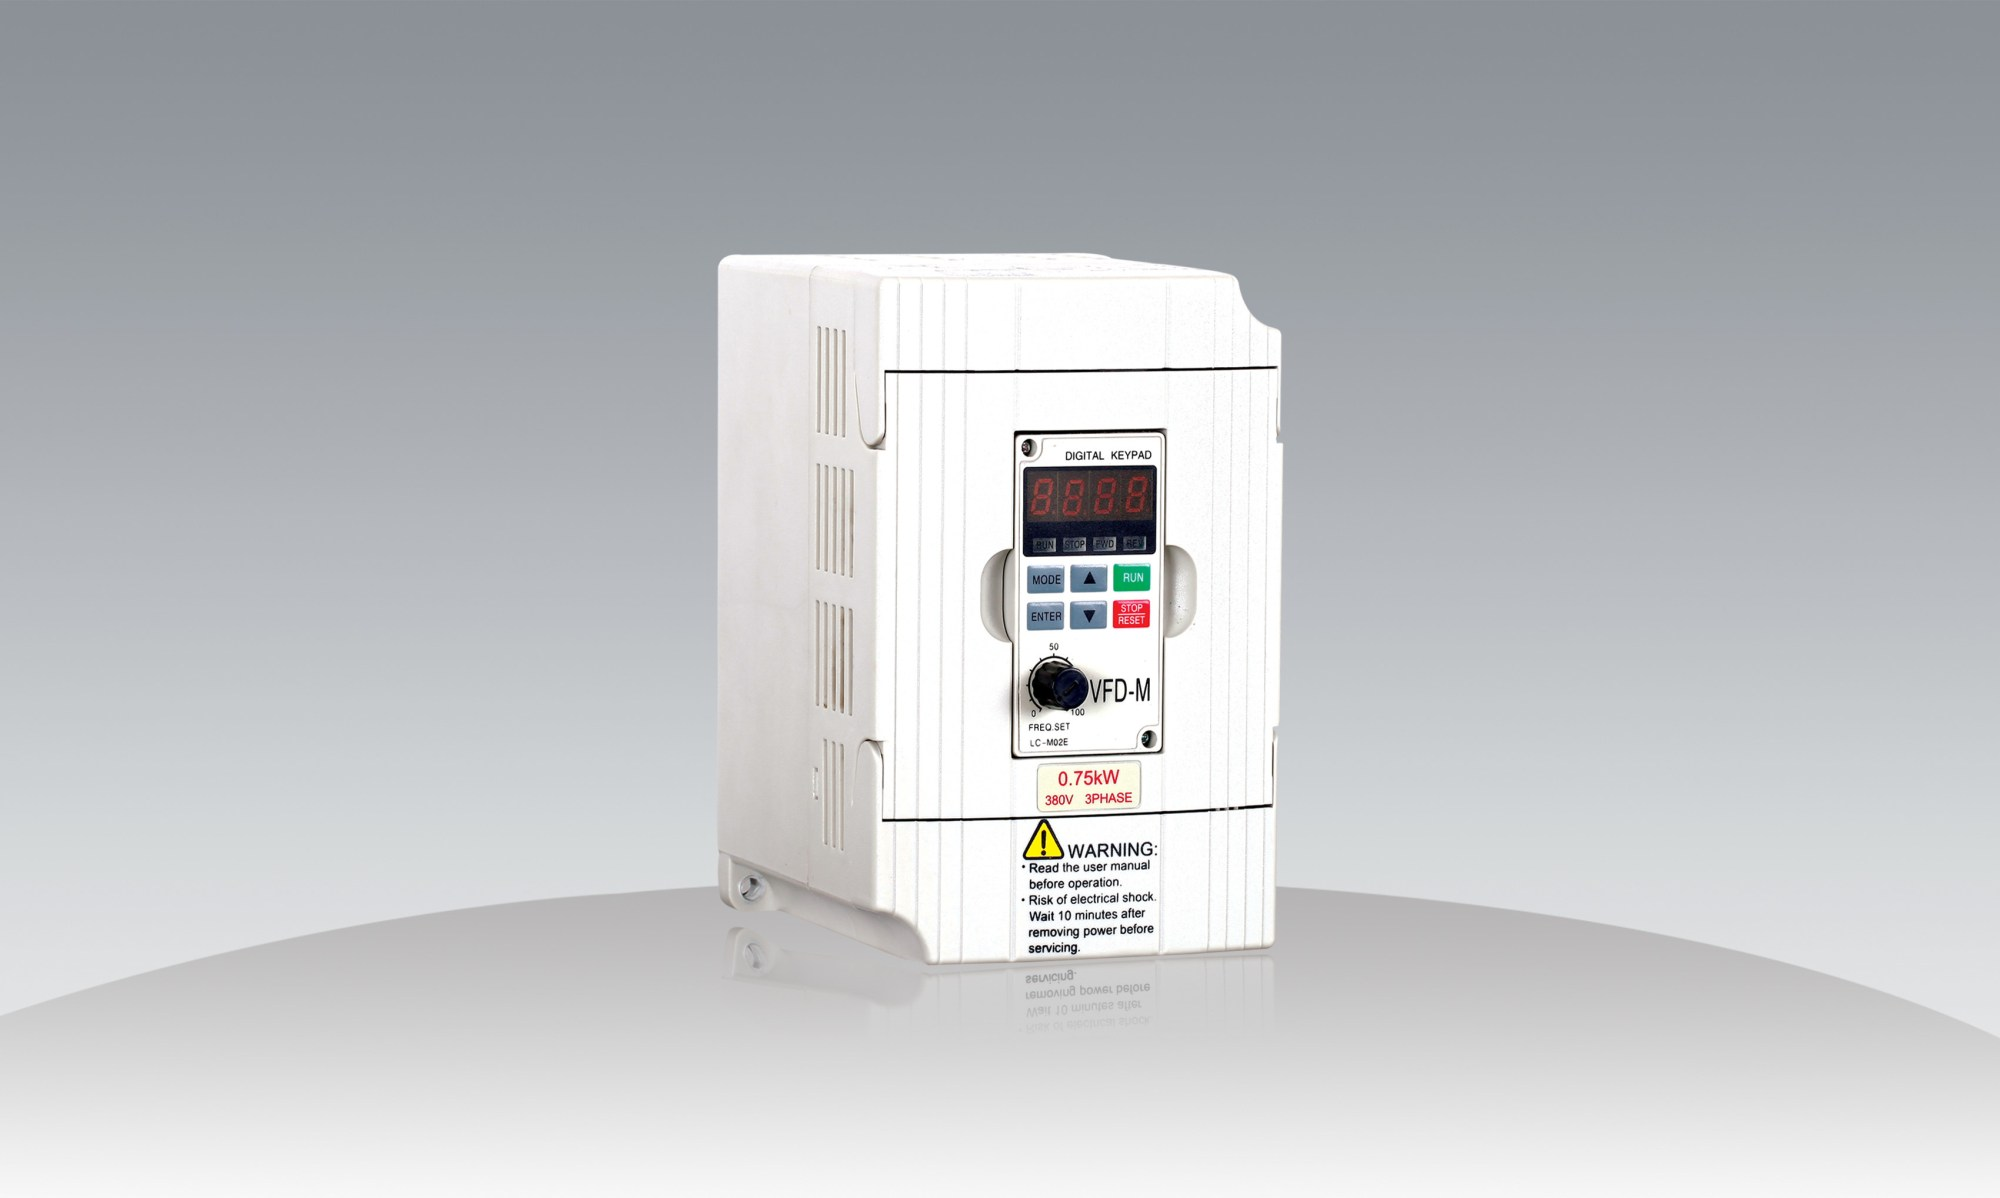 hight resolution of china mini vector control frequency inverter same as delta vfd m china frequency inverter ac drive